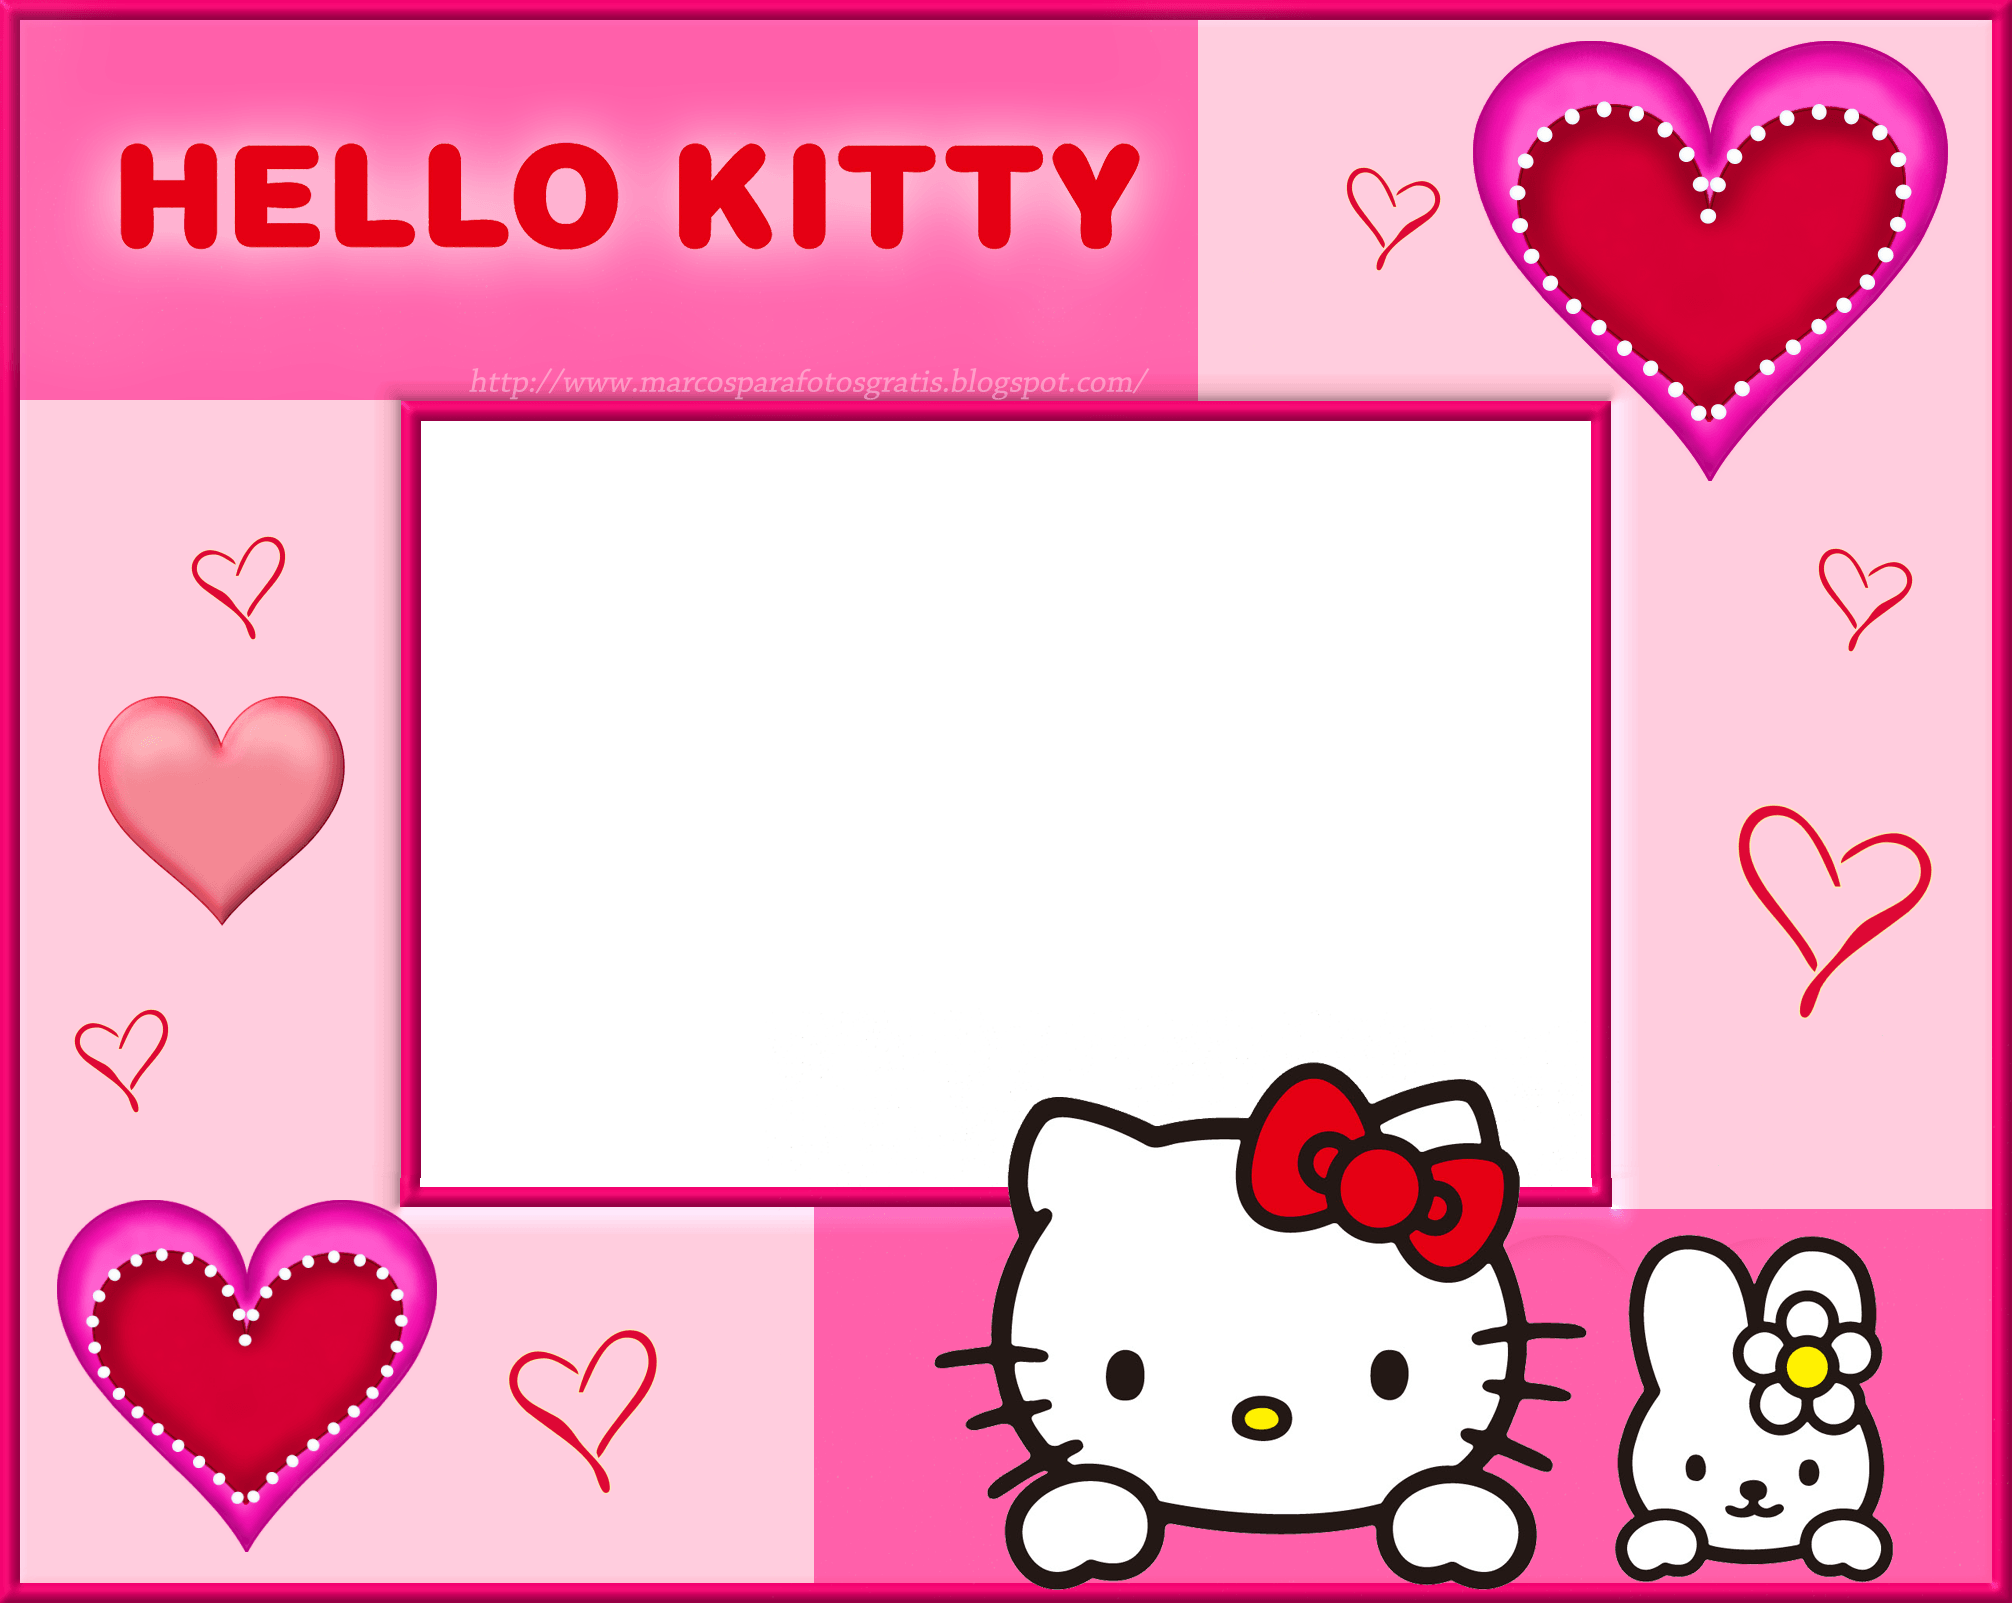 Hello Kitty Wallpapers 2015